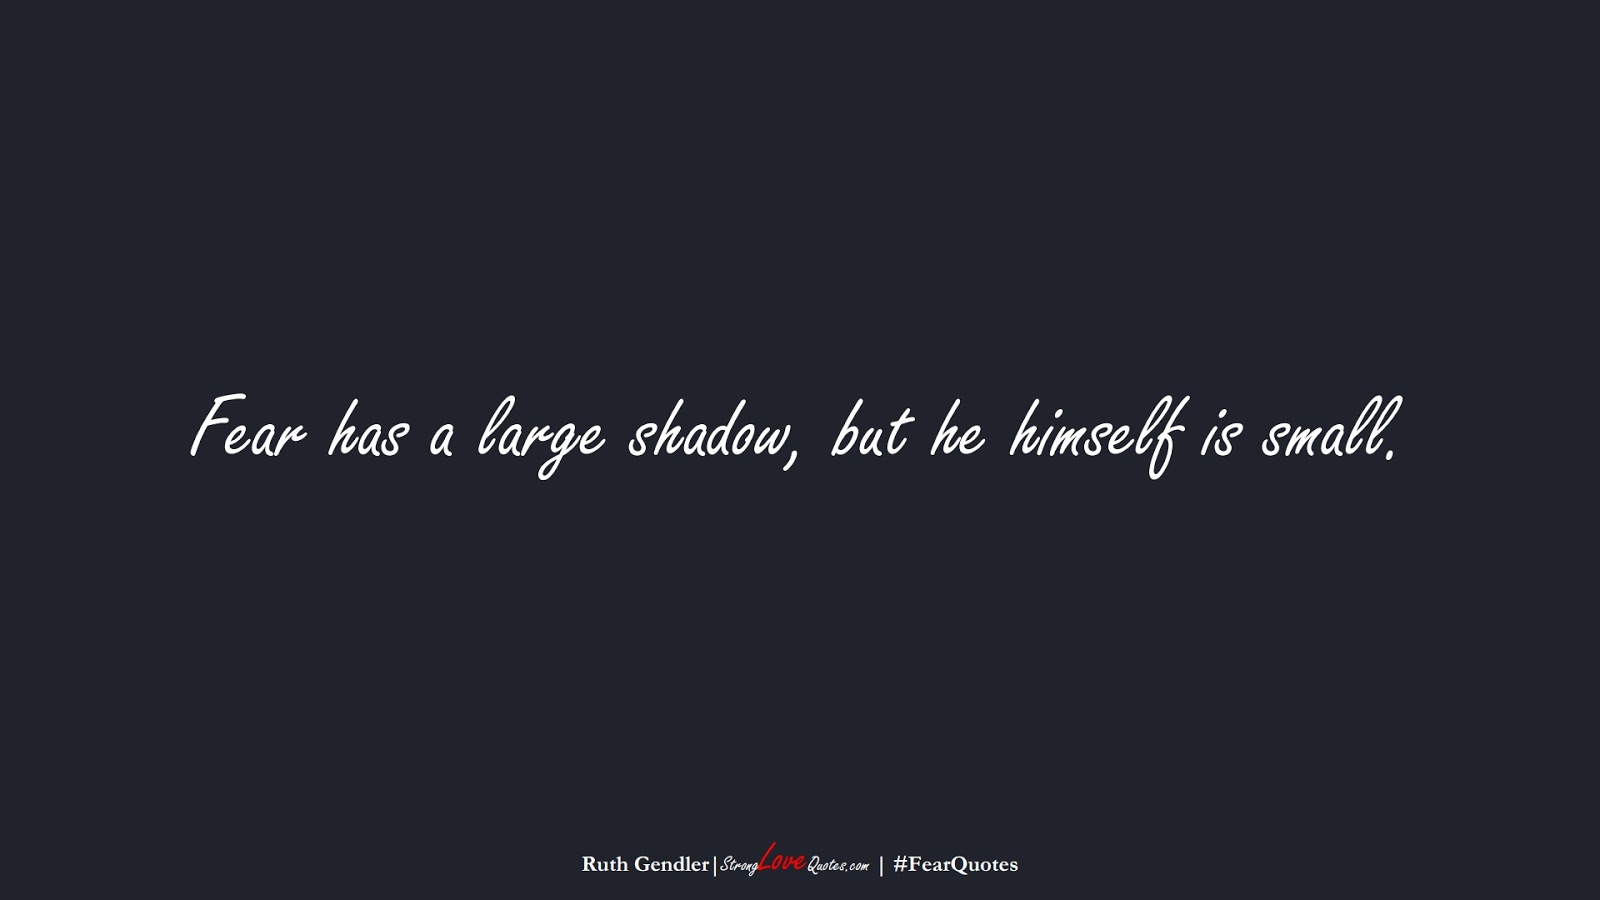 Fear has a large shadow, but he himself is small. (Ruth Gendler);  #FearQuotes